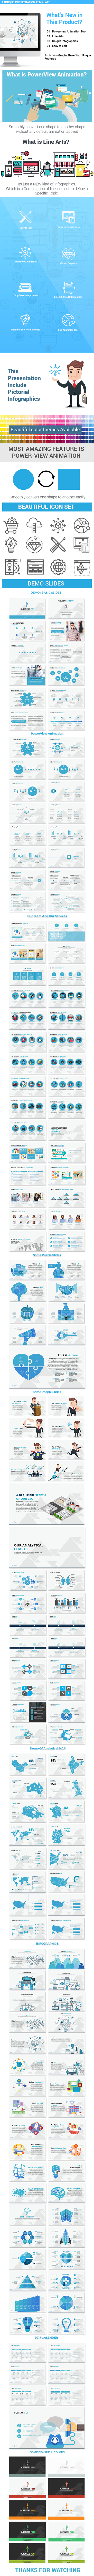 GraphicRiver Shift Powerpoint Template 20652388